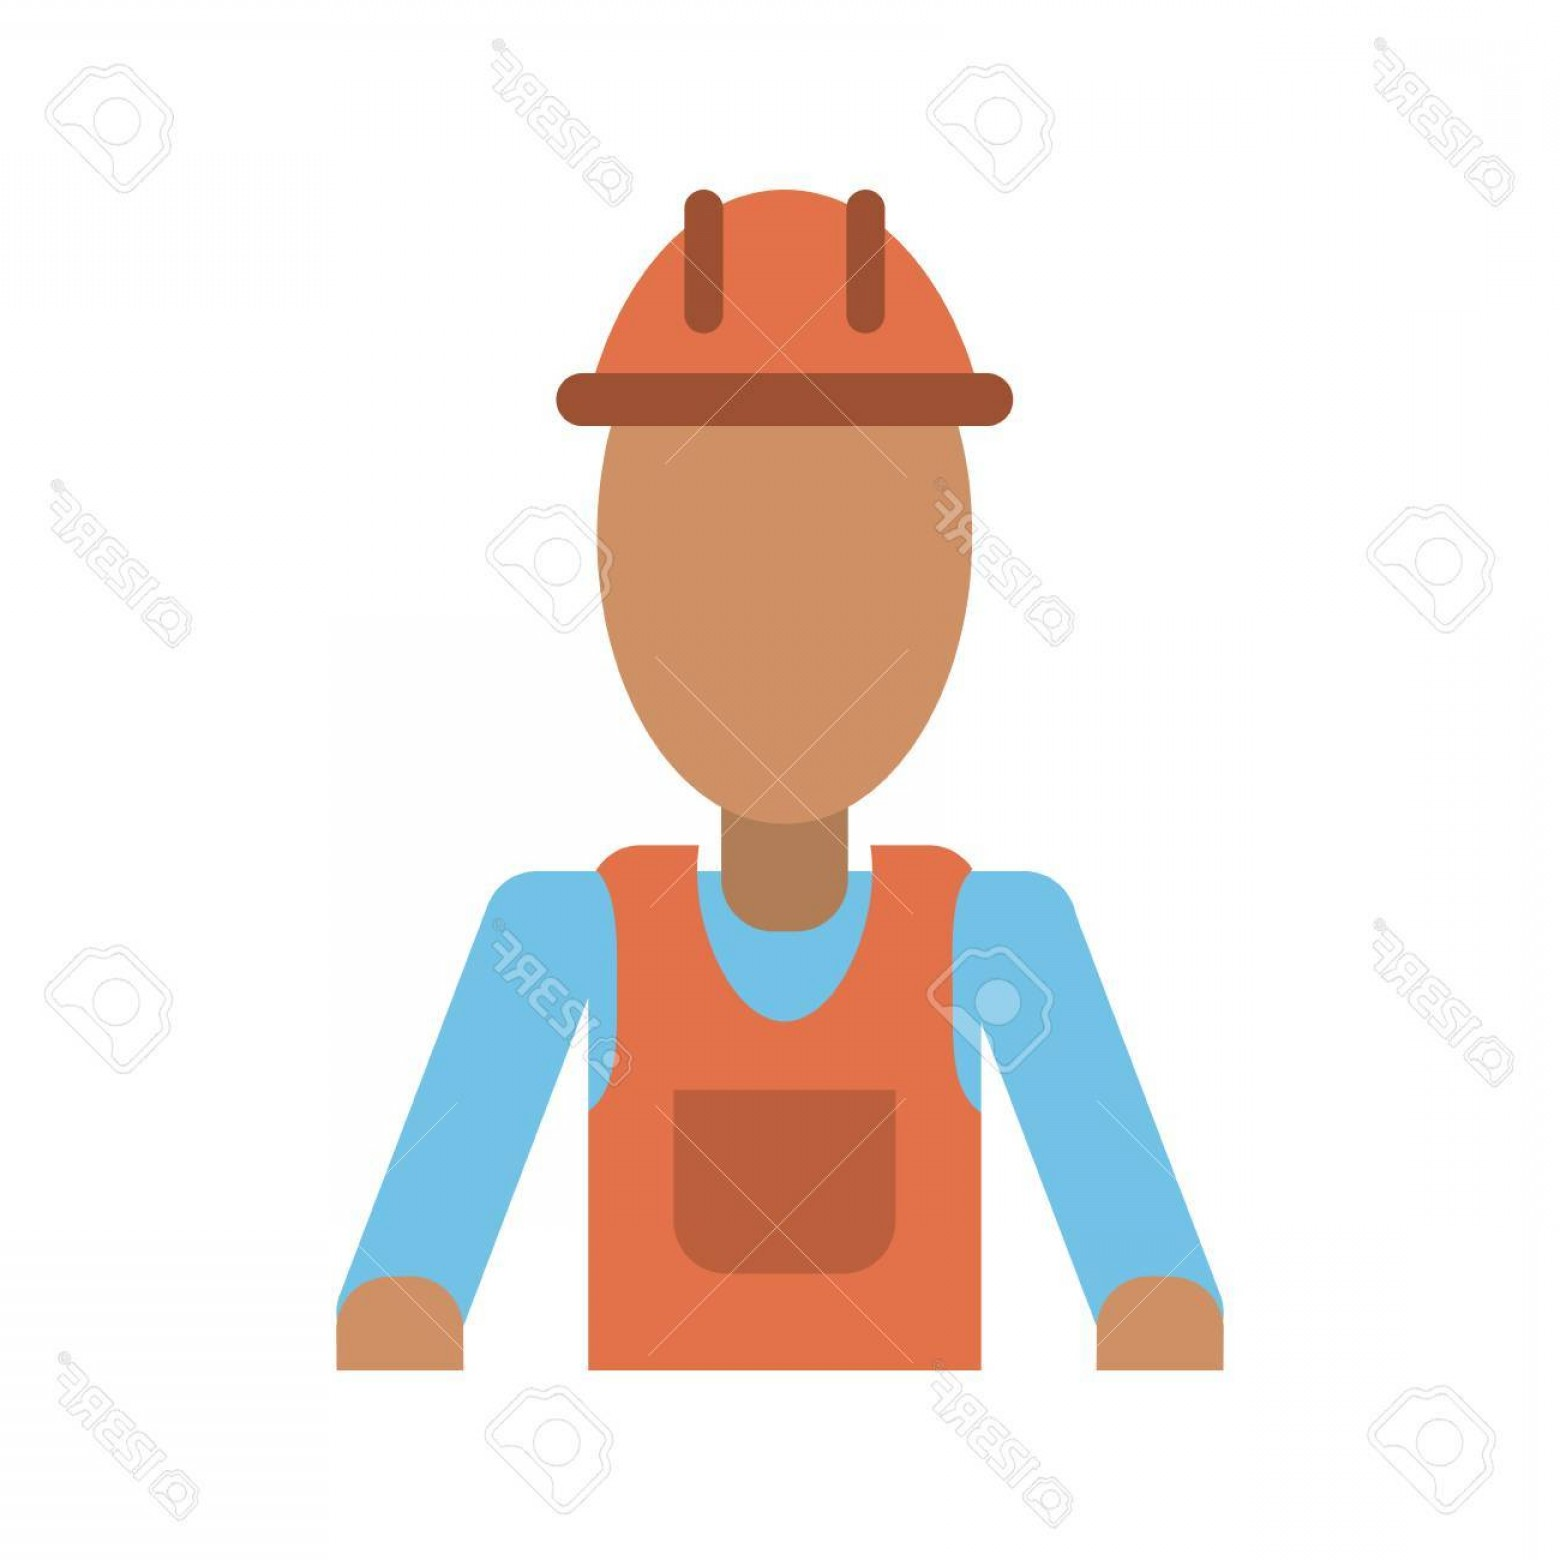 General Contractor Vector: Photostock Vector Male Construction Worker Contractor Avatar Icon Image Vector Illustration Design